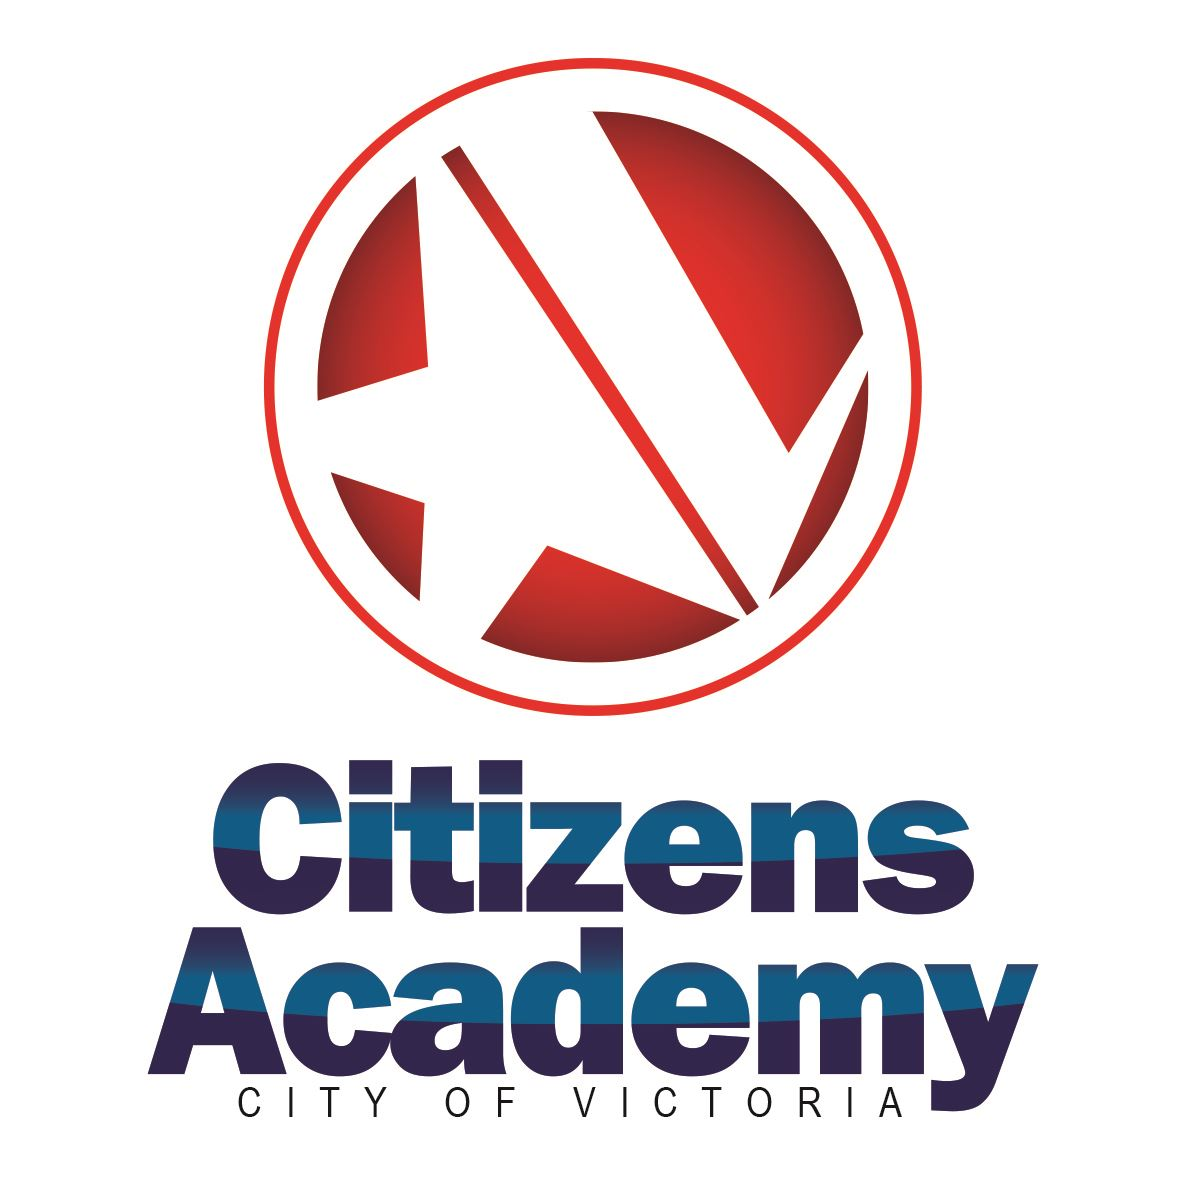 Citizens Academy logo featuring Victoria letter-V-star from City logo